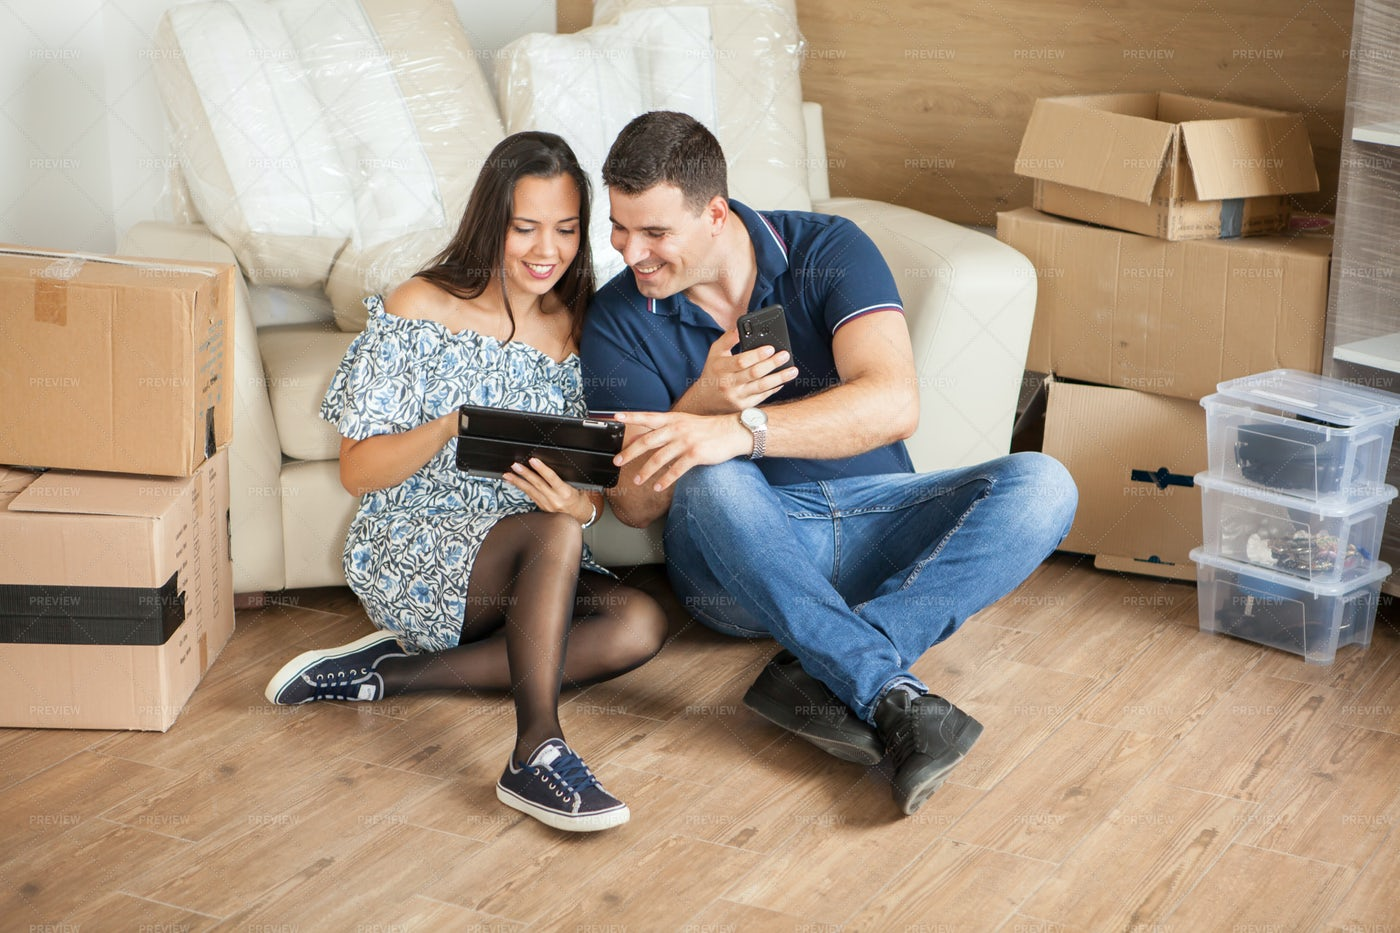 Couple In New House: Stock Photos